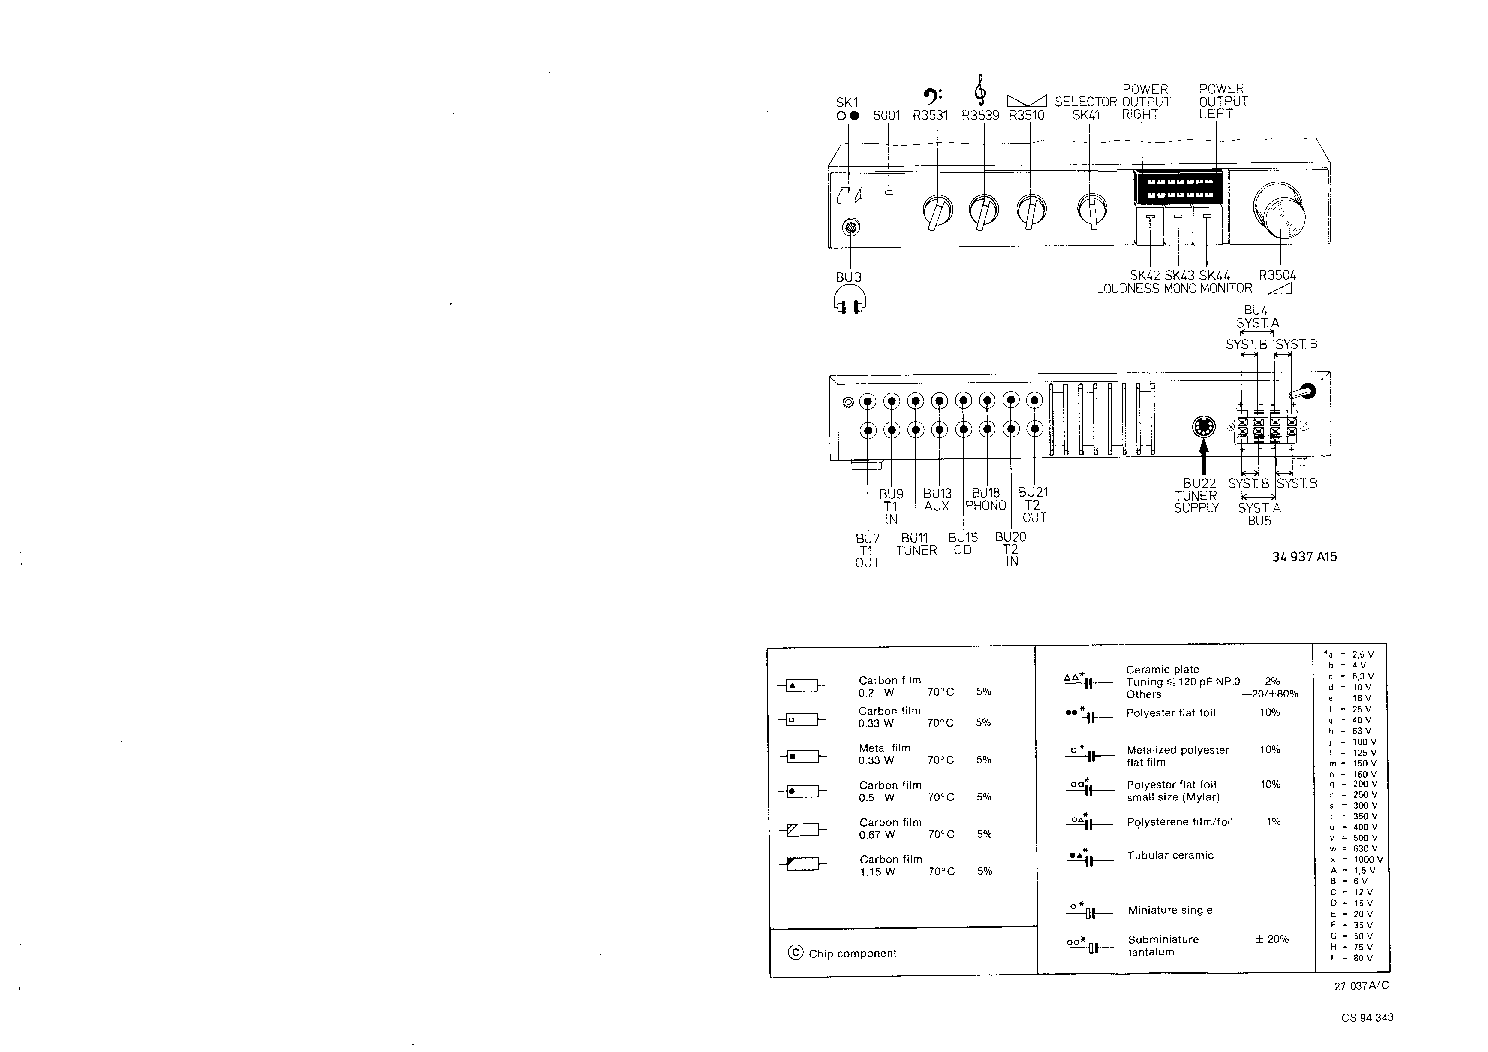 PHILIPS 70FA443 SM service manual (2nd page)